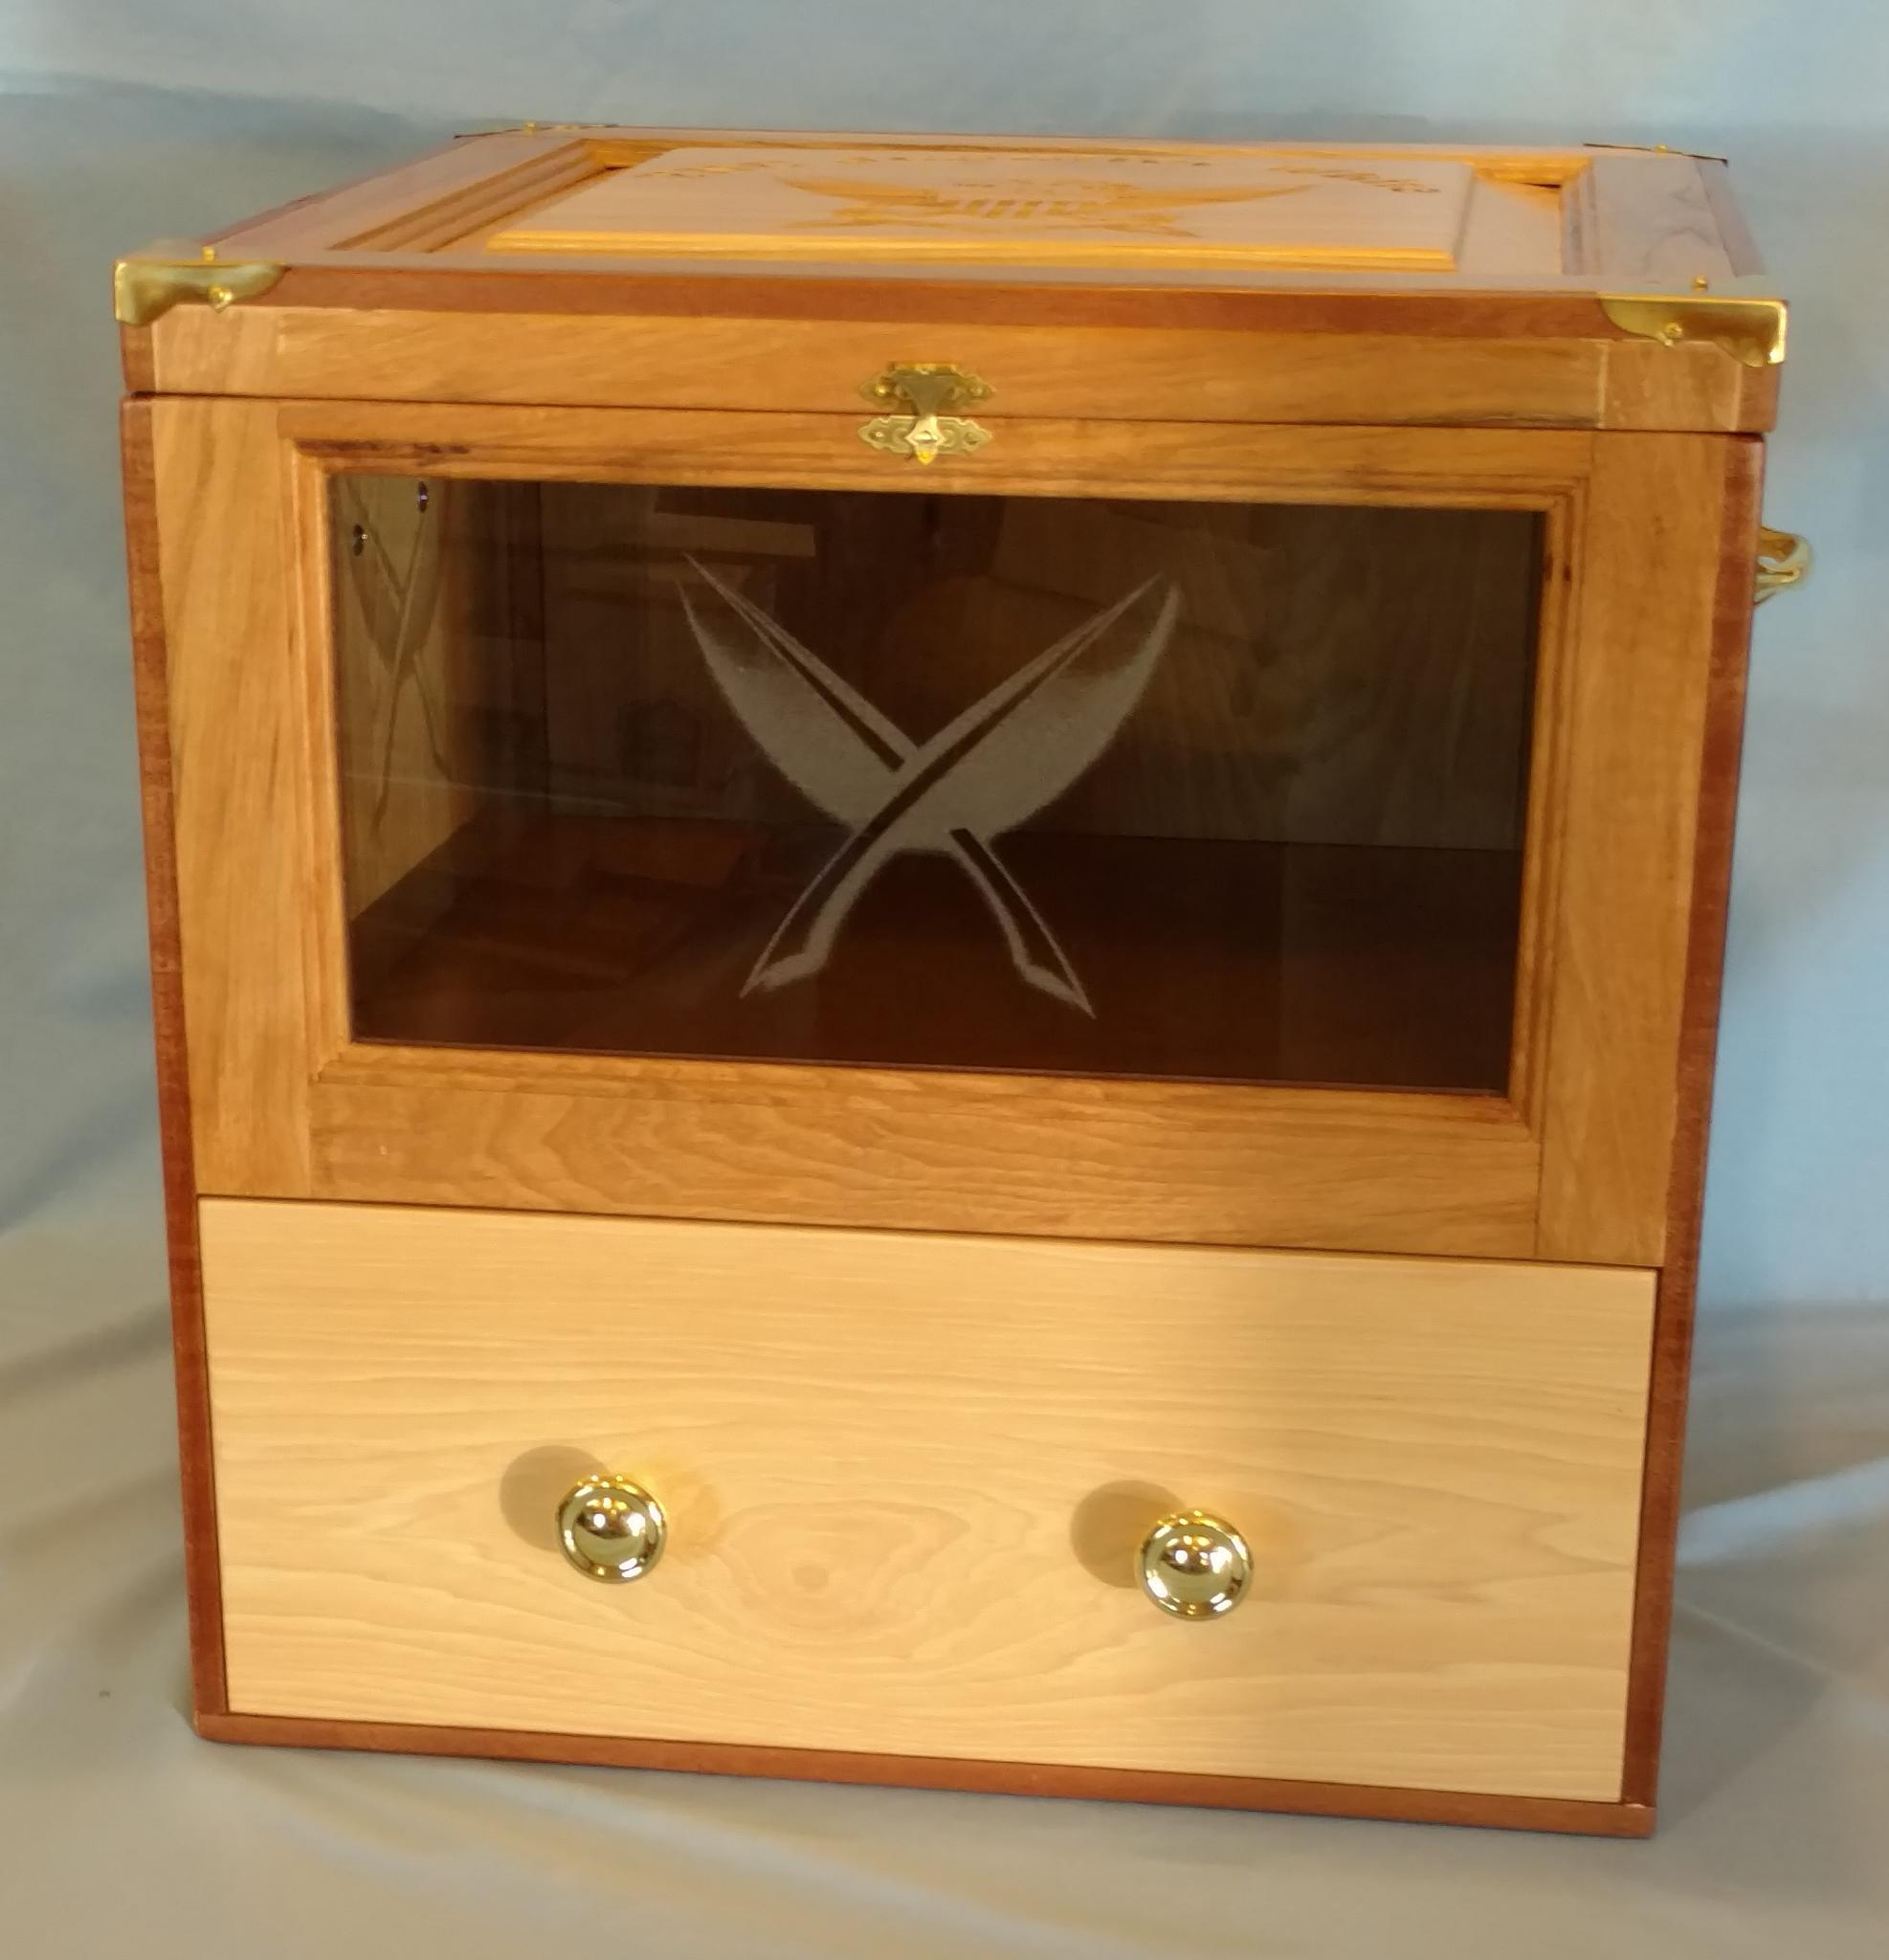 Most of the hat boxes have been designed just for the hat. A recent design included slots to display military coins along the inside walls. Another design included a drawer for the log book.